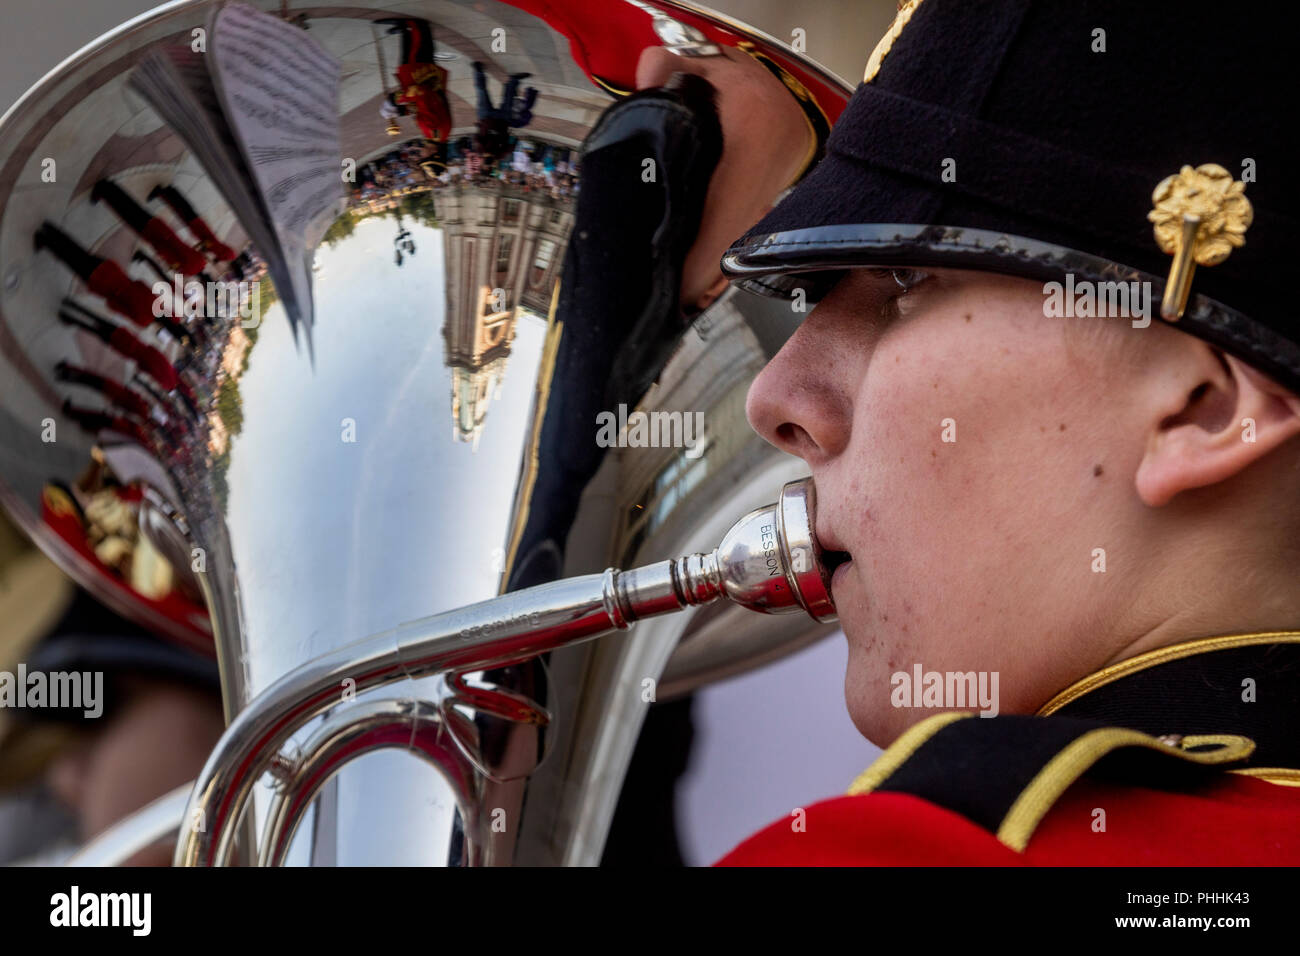 Moscow, Russia. 1st September 2018. Members of the the Brentwood Imperial Youth Band participating in the 2018 Spasskaya Tower International Military Music Festival, perform at the Tsaritsyno park in Moscow Credit: Nikolay Vinokurov/Alamy Live News Stock Photo